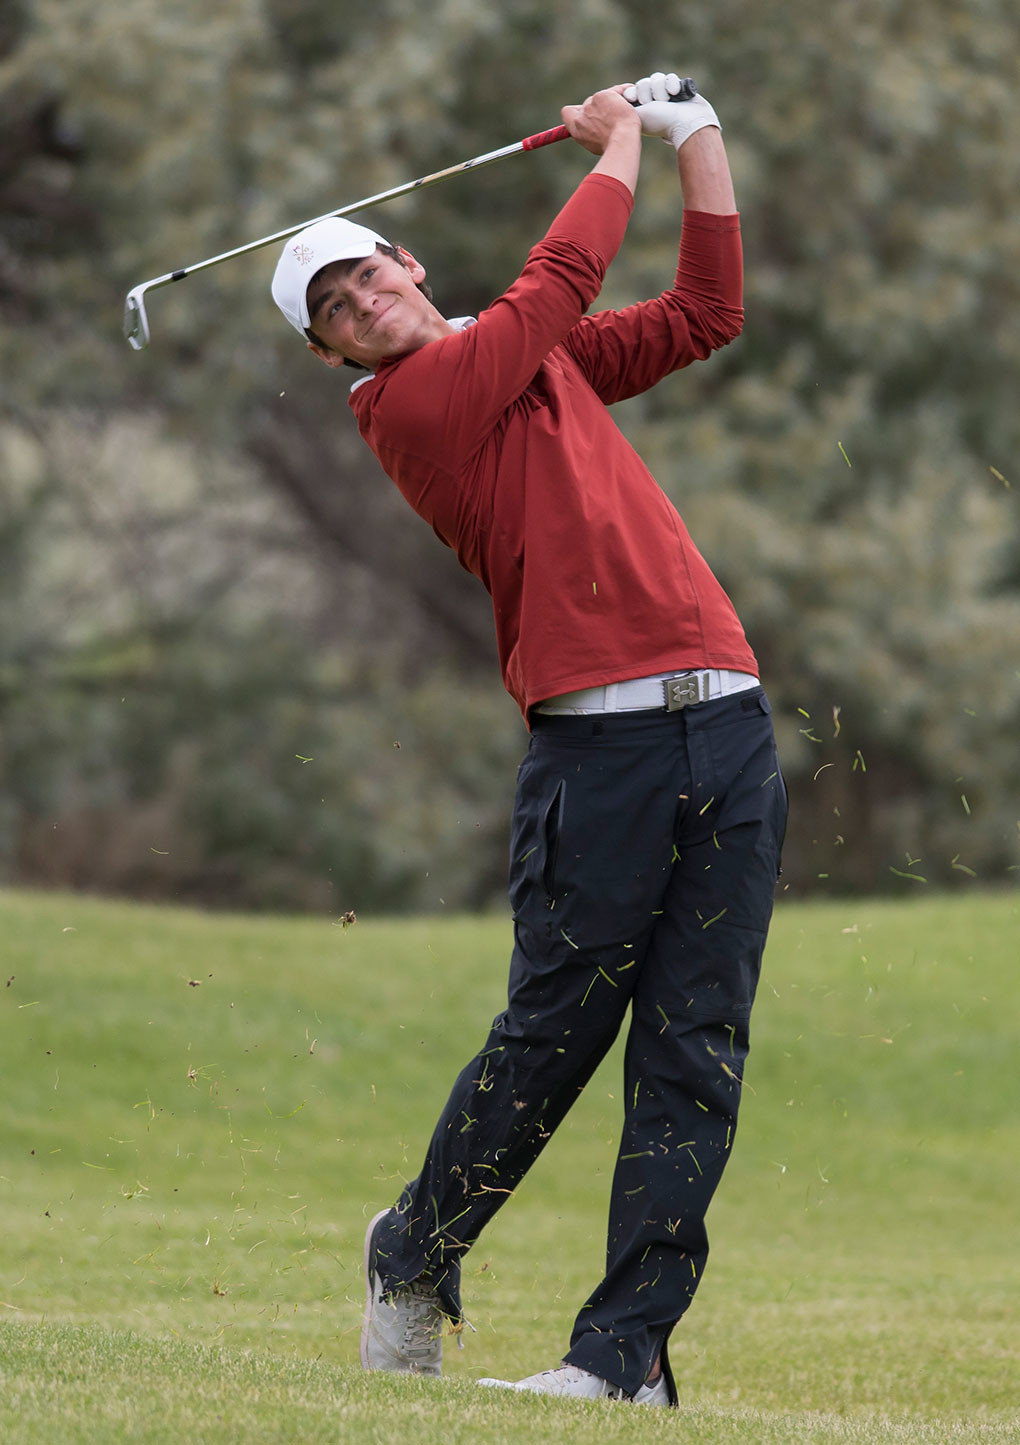 Pinedale's Jordan Costello — a member of the University of Utah golf team — tracks his approach shot Friday during the 2018 Wyoming State Match Play tournament at Powell Golf Club. Costello finished in the money in the Championship Flight's consolation bracket.